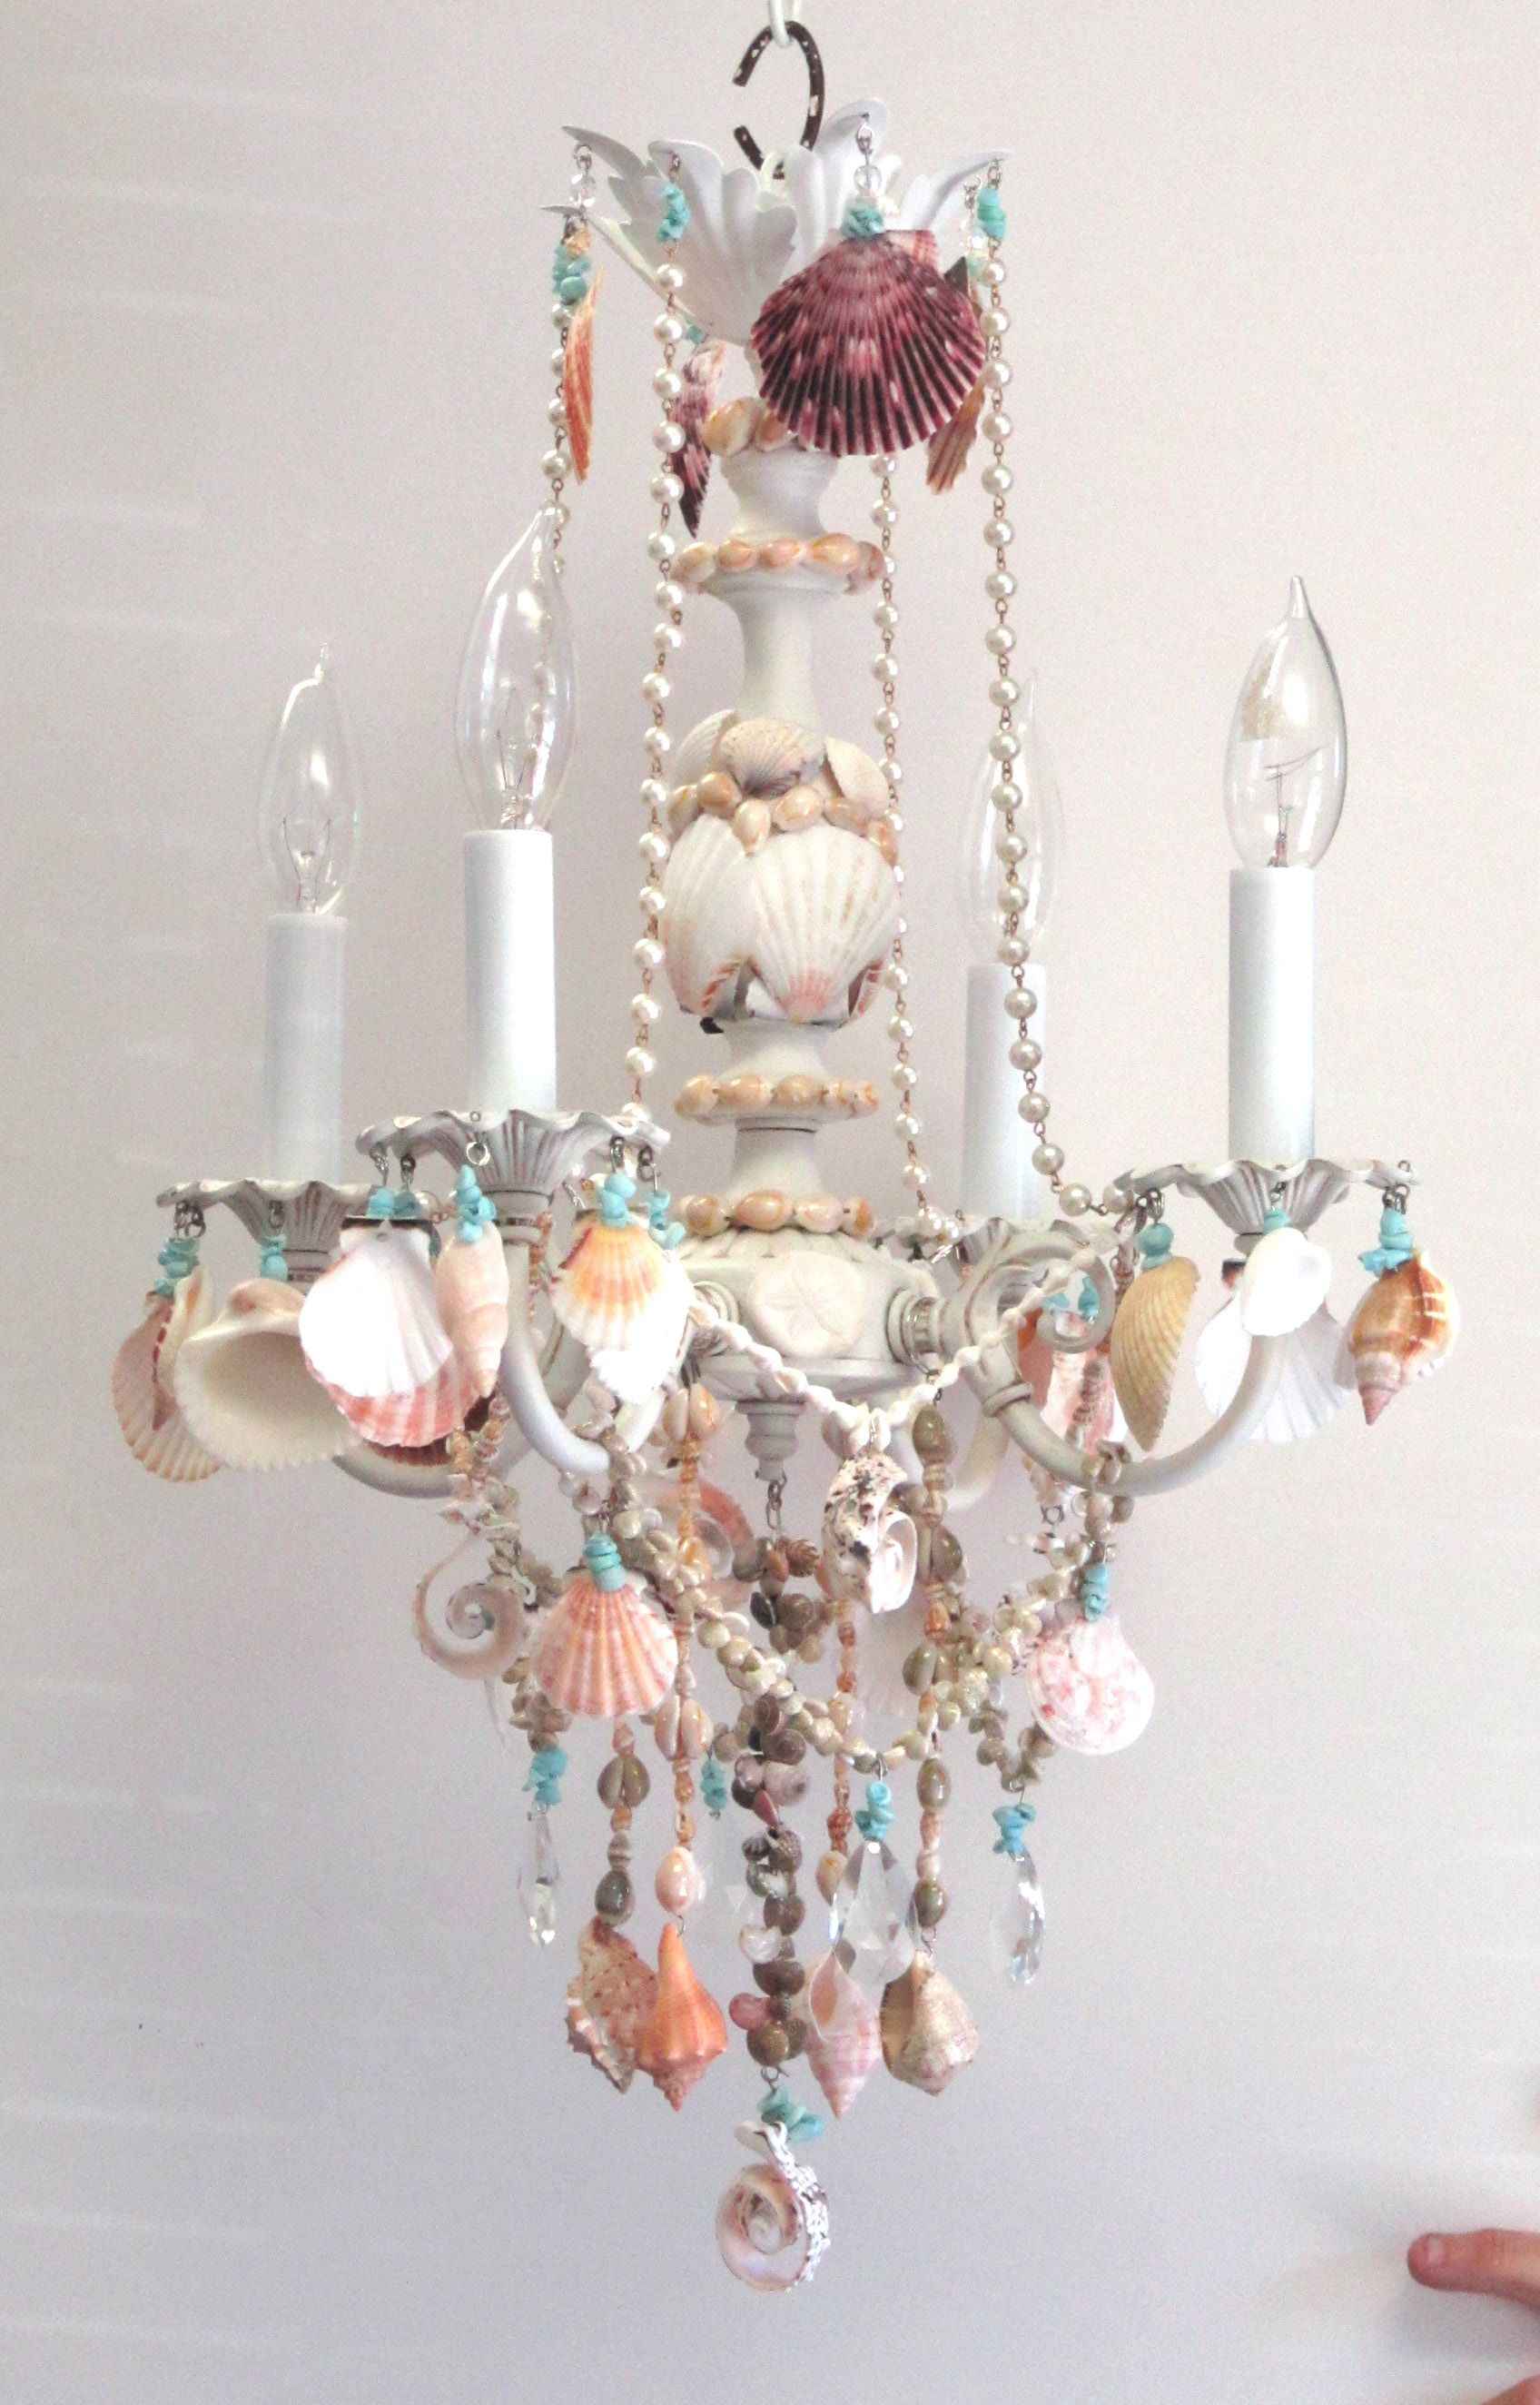 Crystal and shell chandelier embellished witih seashells beach crystal and shell chandelier embellished witih seashells beach cottage style home decor lighting arubaitofo Gallery